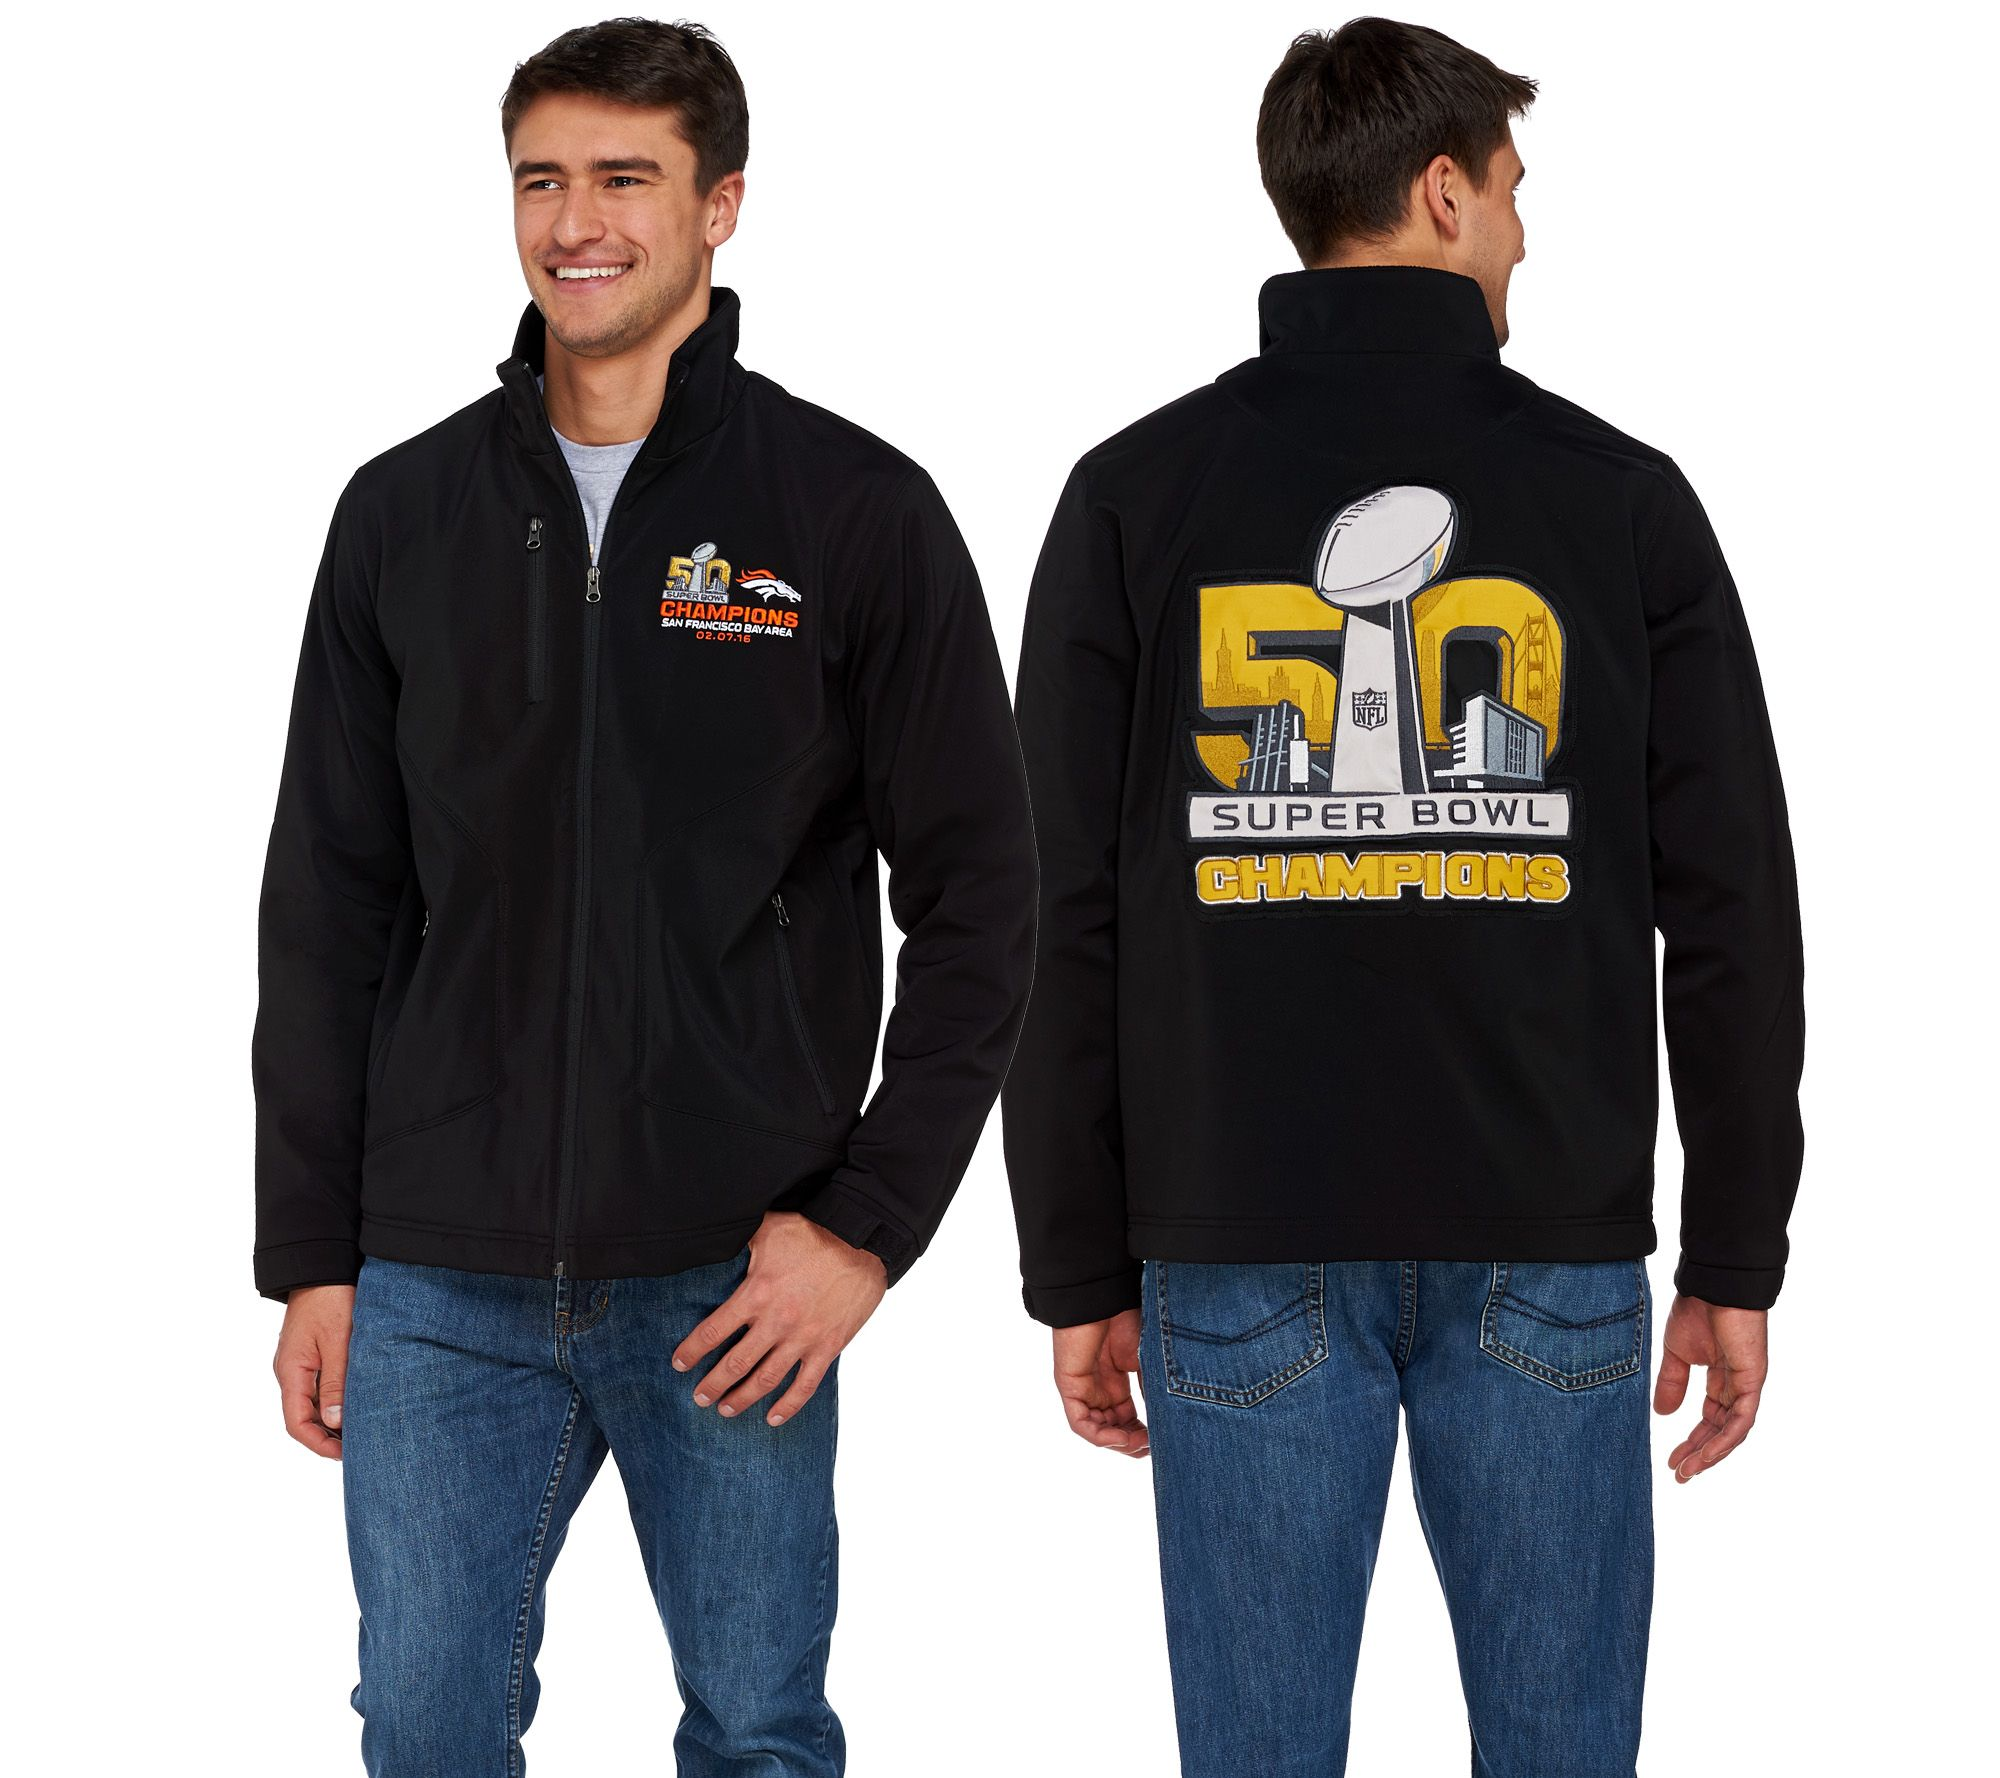 NFL Super Bowl 50 Champions Denver Broncos Men's Shell Jacket - A279838